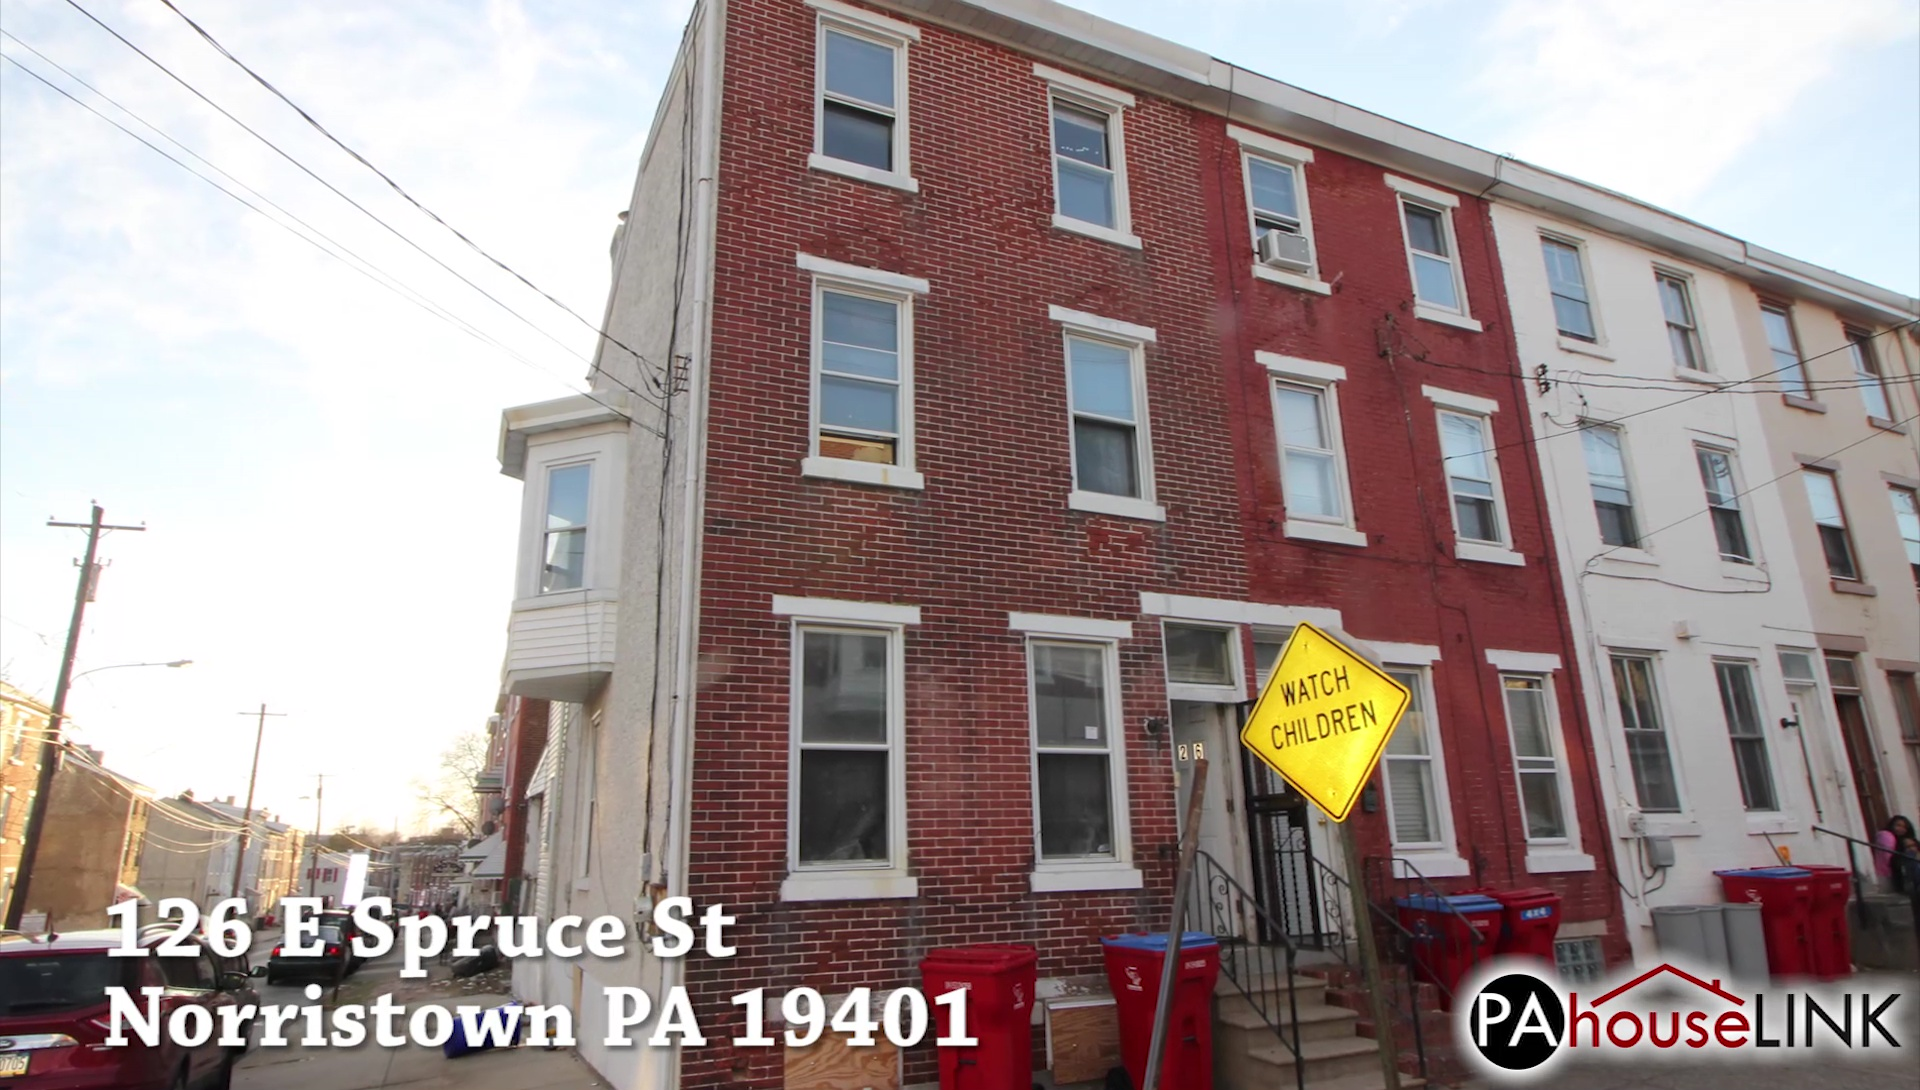 126 E Spruce St Norristown PA 19401 | Coming Soon Foreclosure Properties Norristown PA 19401